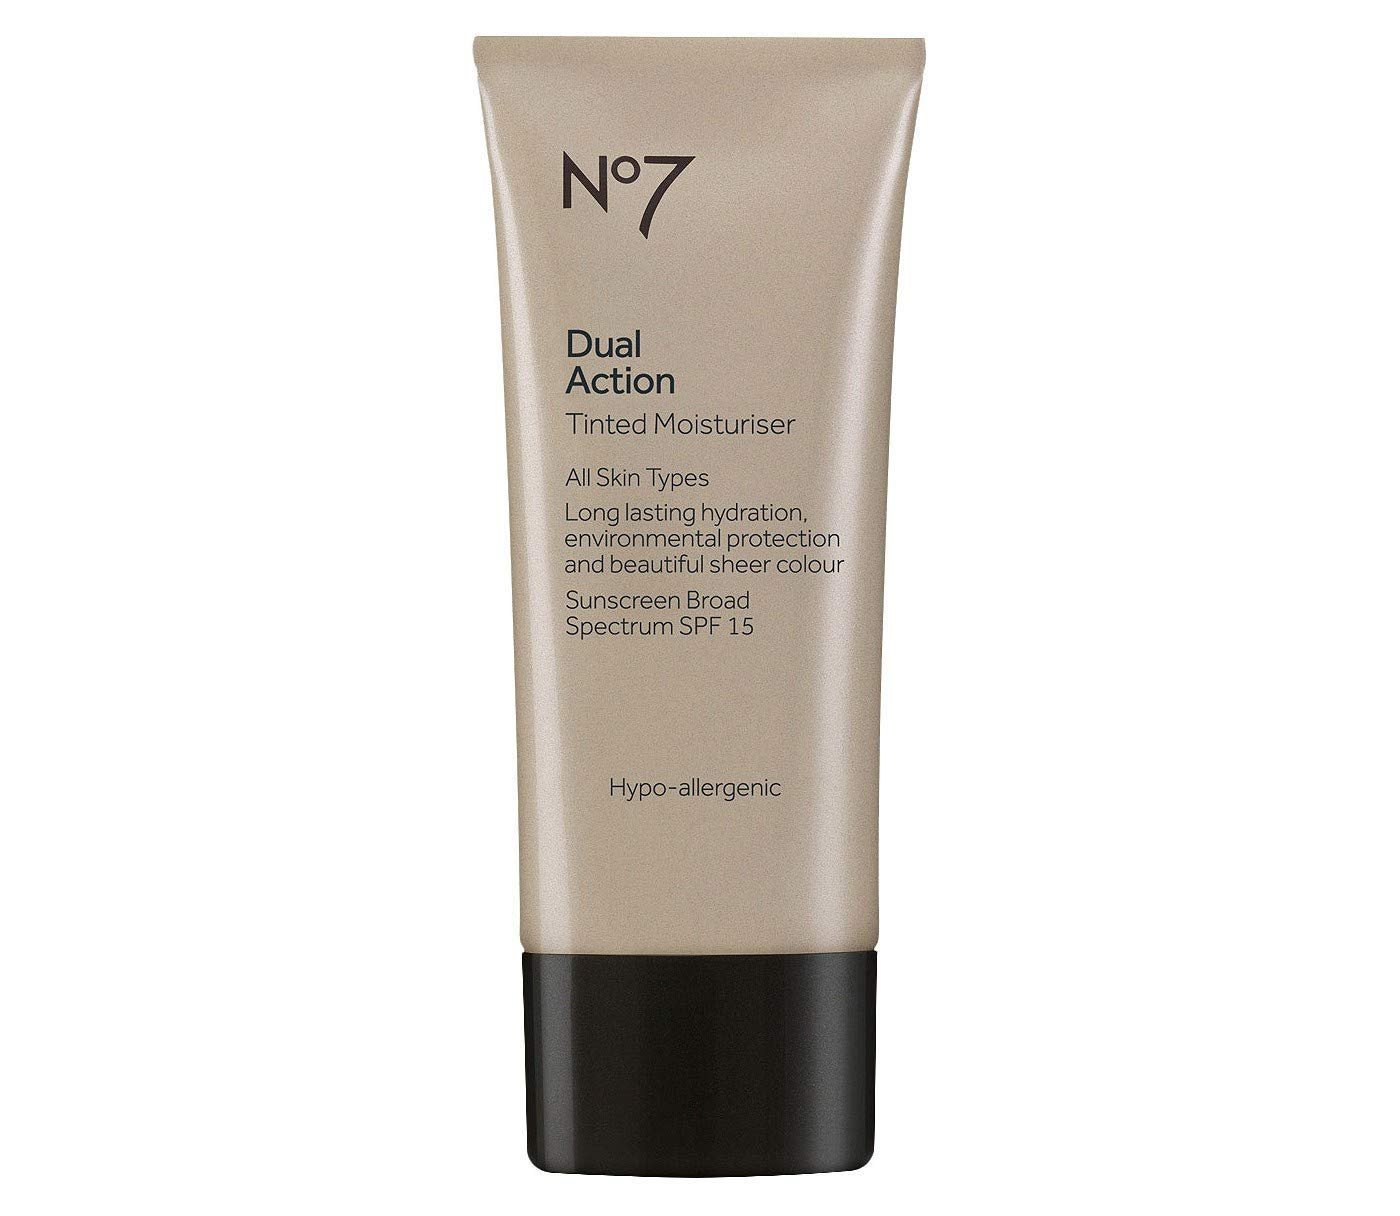 Boots No7 Dual Action Tinted Moisturiser Fair 1.6 ounce (SPF15) by Boots